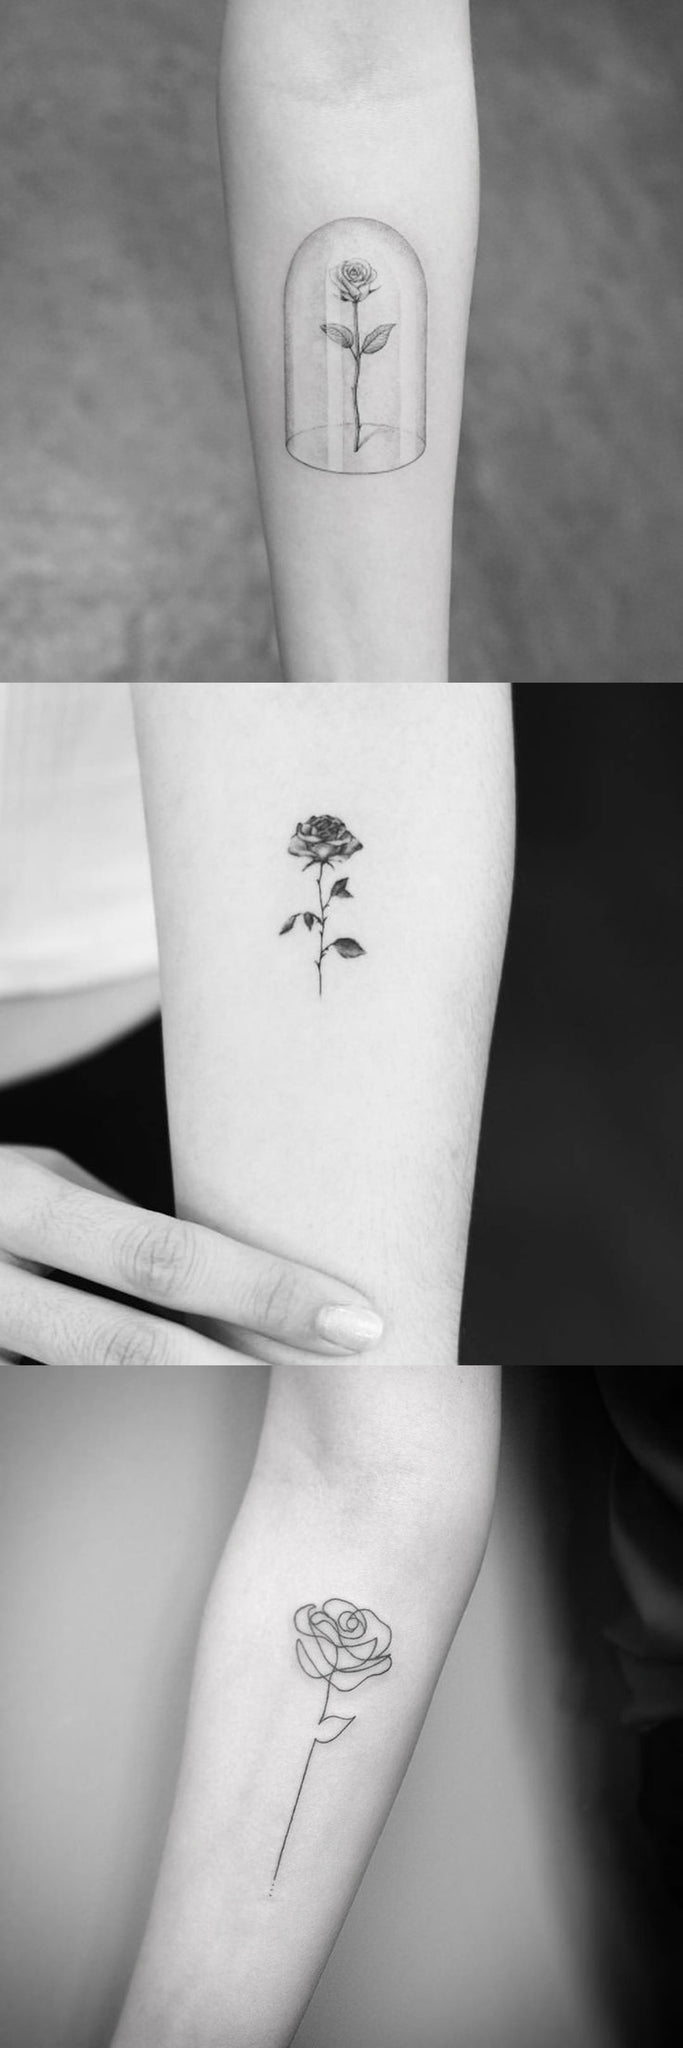 Simple Rose Arm Tattoo Ideas at MyBodiArt.com - Black and White Floral Flower Bicep Wrist Tatt Design